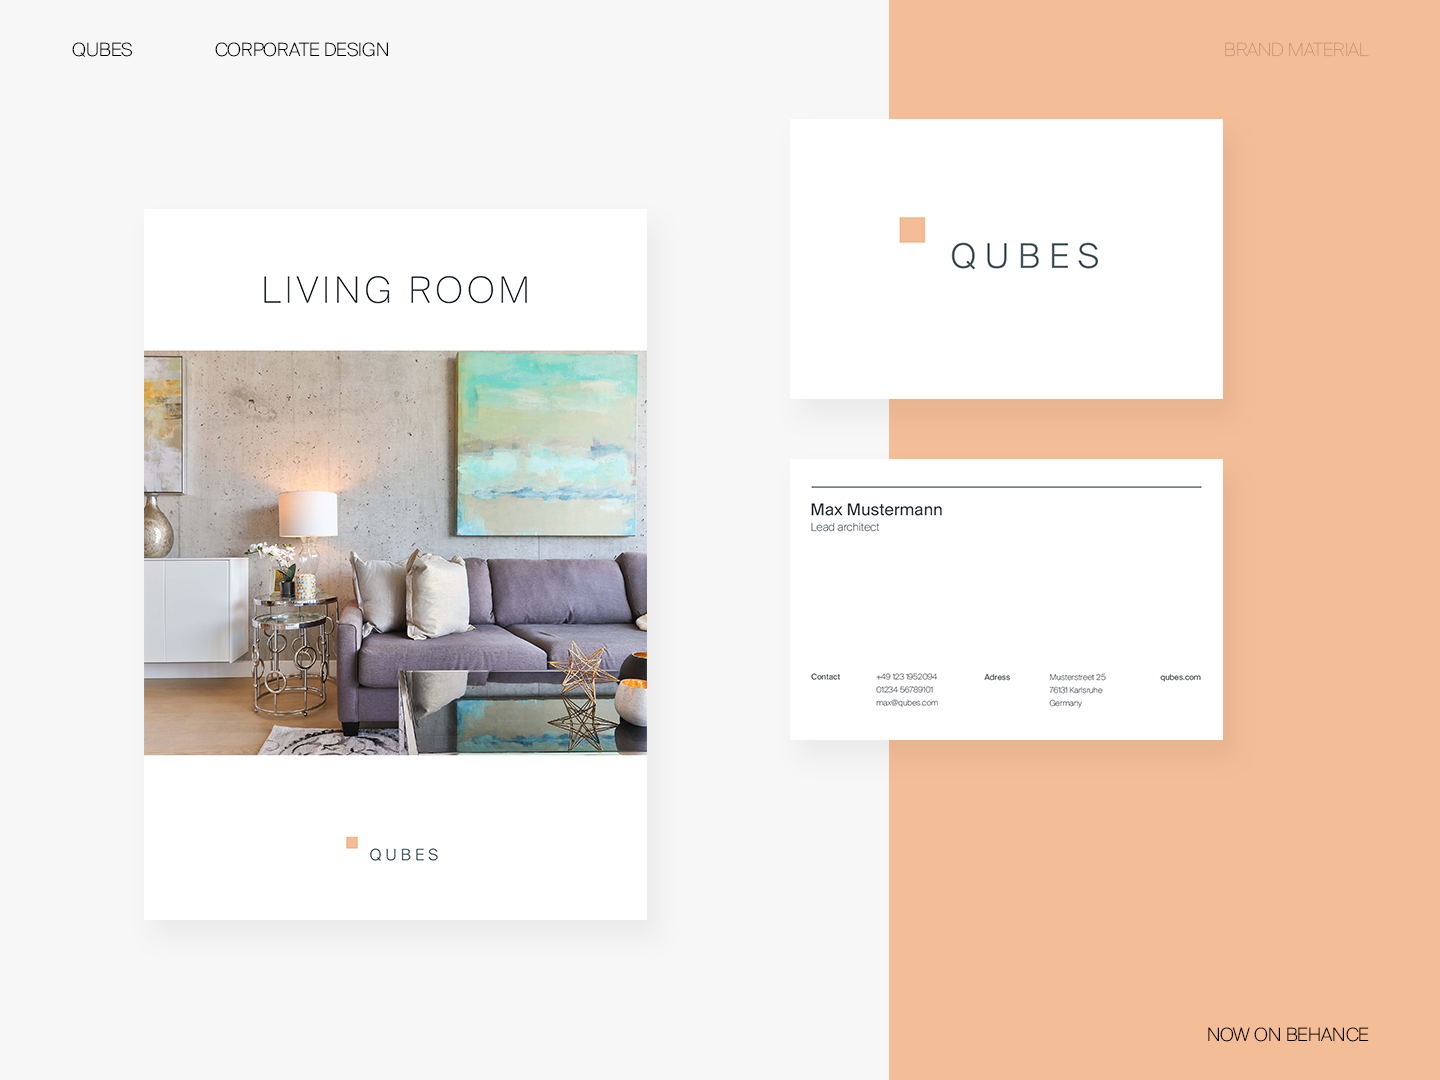 Interior Design Agency Brand Materials By Norman Dubois For Dorfjungs On Dribbble